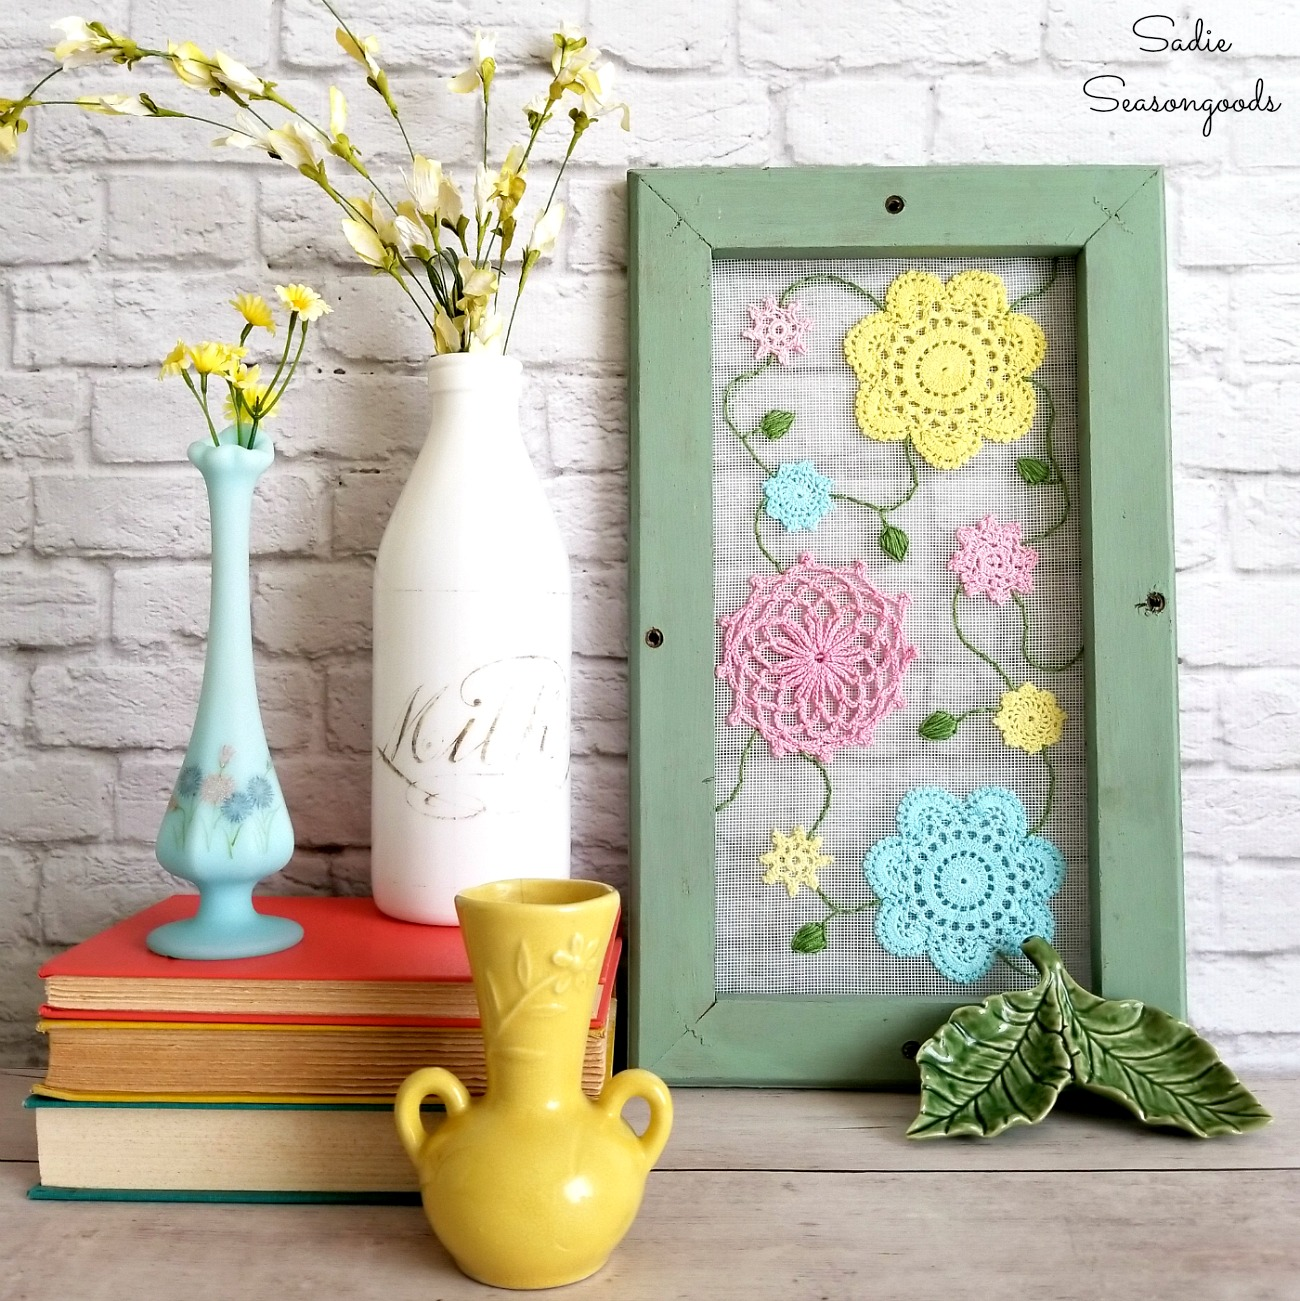 Spring Home Decor Design Ideas: Upcycling Ideas And Repurposing Projects / Crafts For